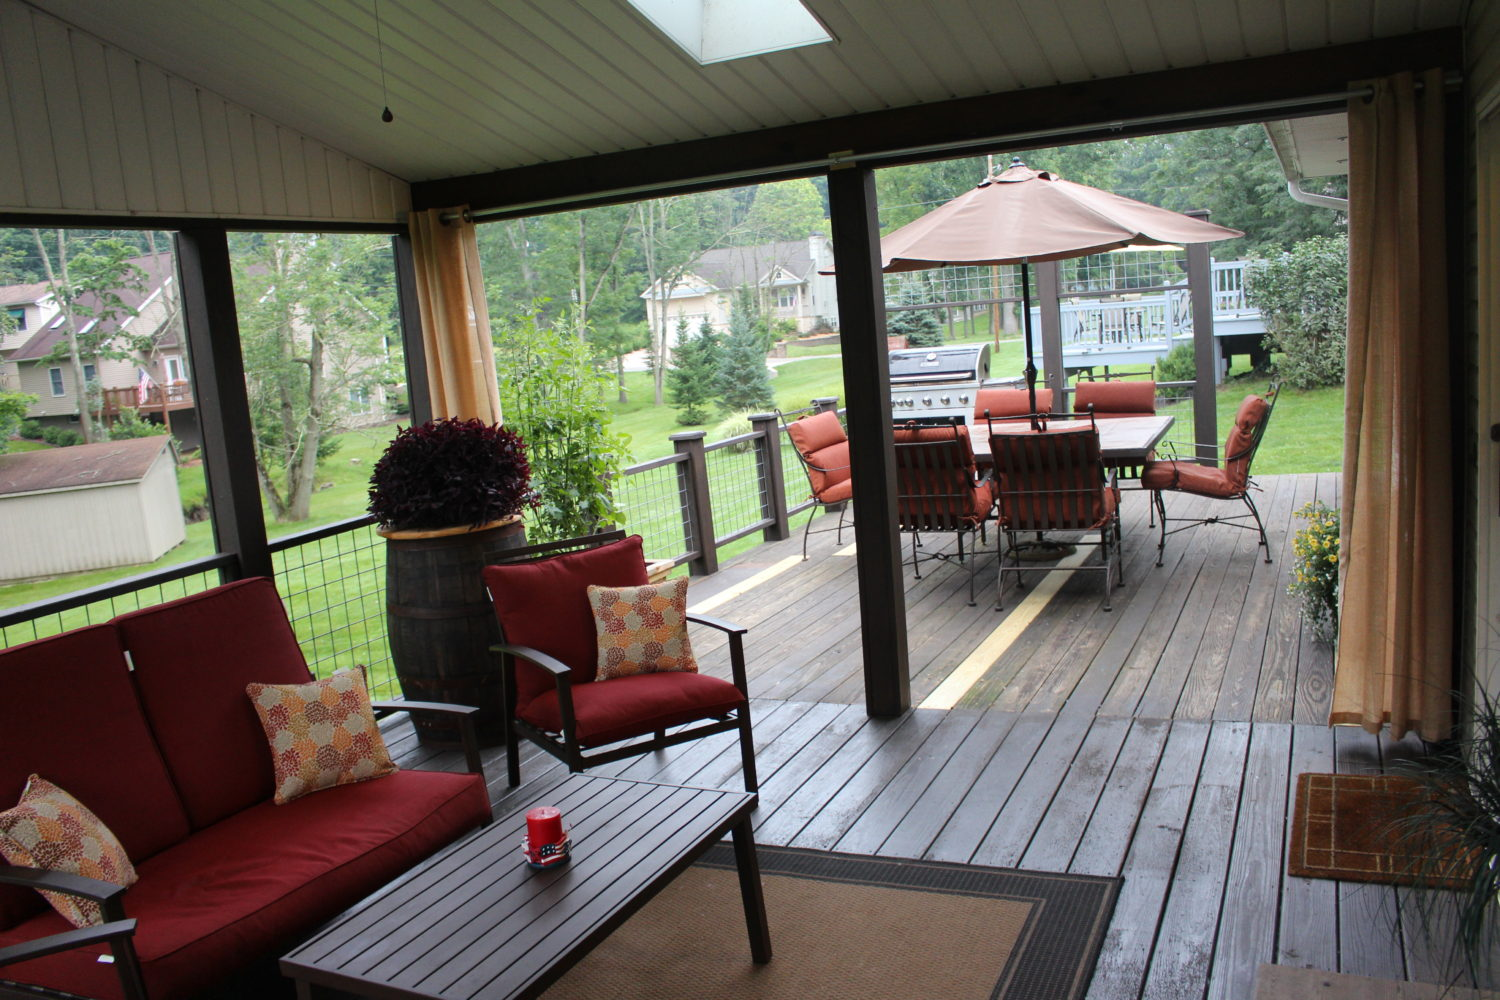 Creating An Outdoor Living Room From A Screened In Porch And Deck   Old  World Garden Farms